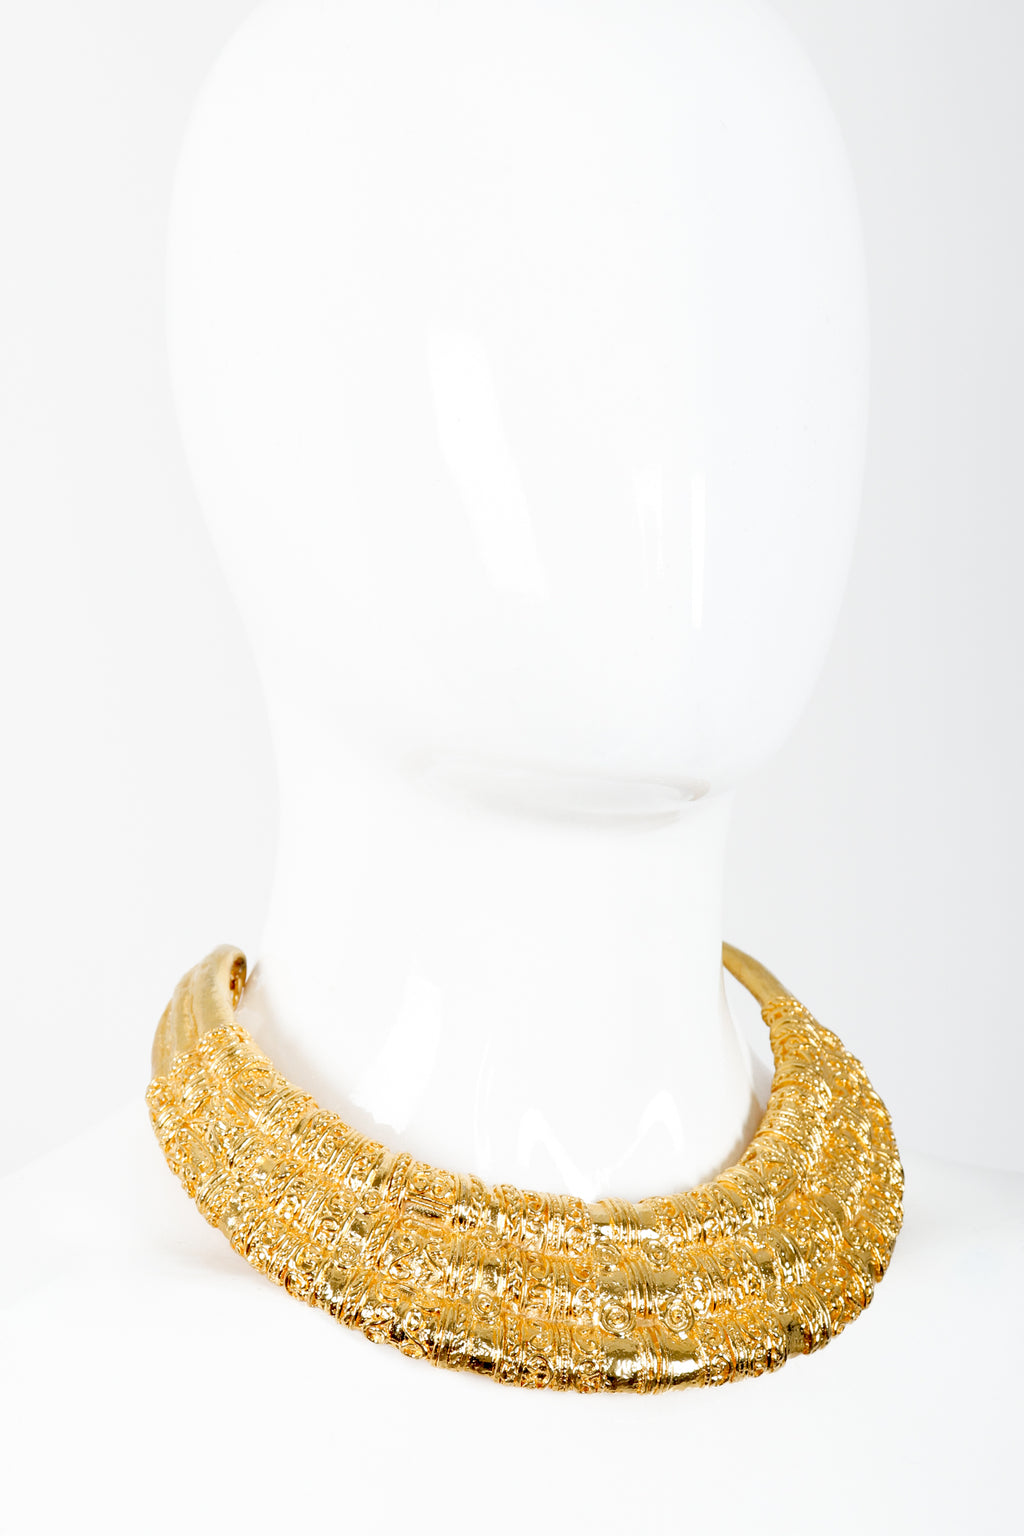 Vintage Judith Leiber Gold Etruscan Collar Plate Necklace on Mannequin at Recess